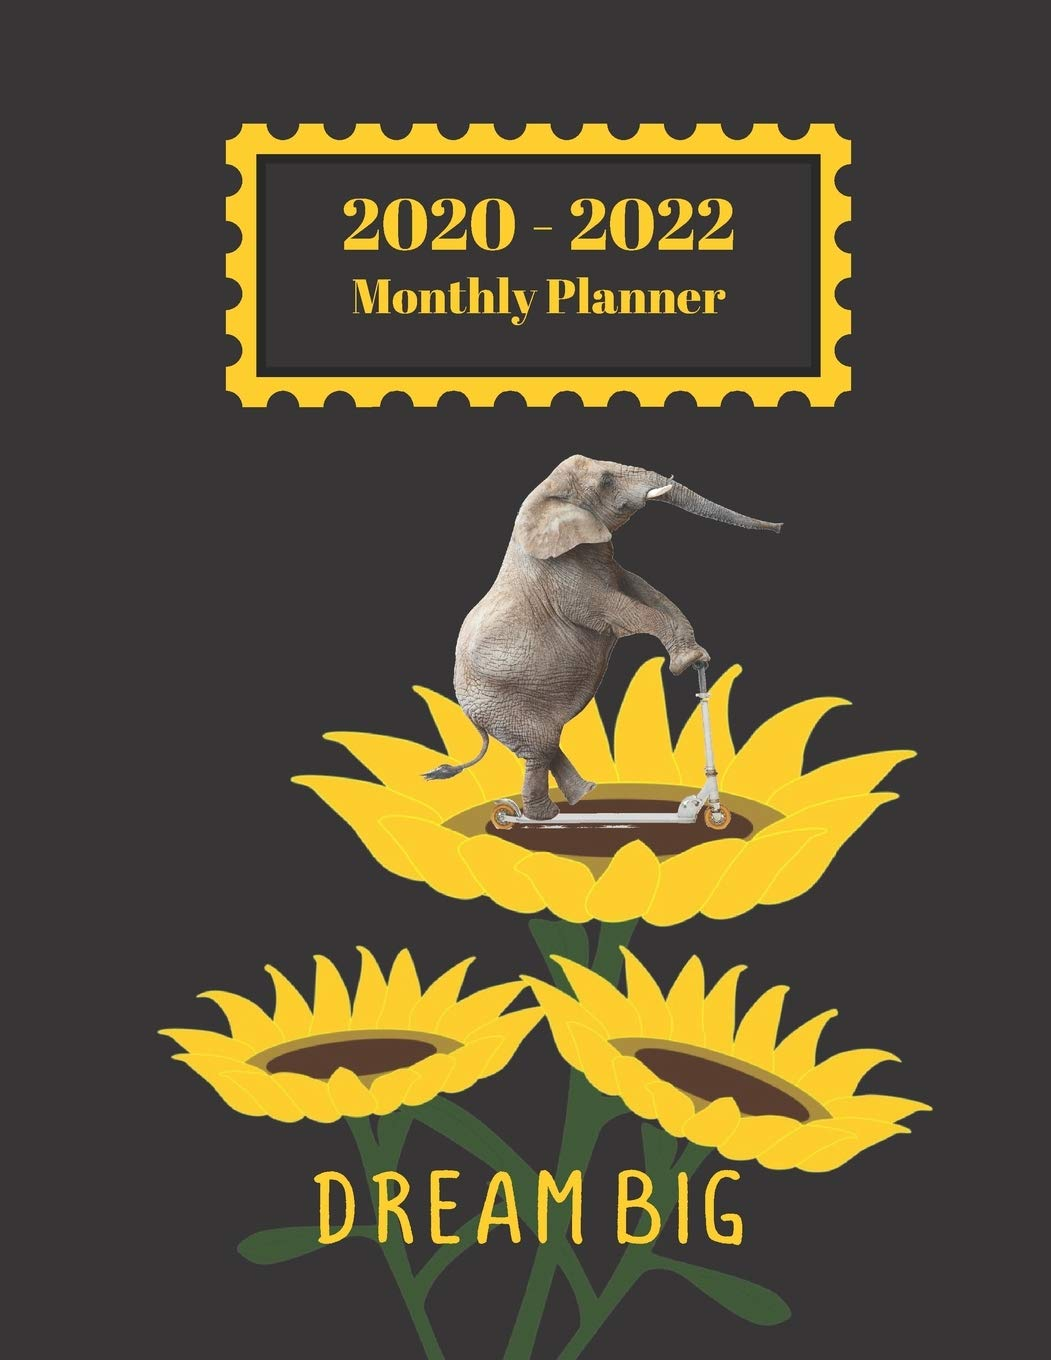 Appointment Calendar 2022.2020 2022 Monthly Planner Dream Big Elephant On Scooter Sunflower Funny Cover 2 Year Planner Appointment Calendar Organizer And Journal Notebook Amazon In Dumkist Books